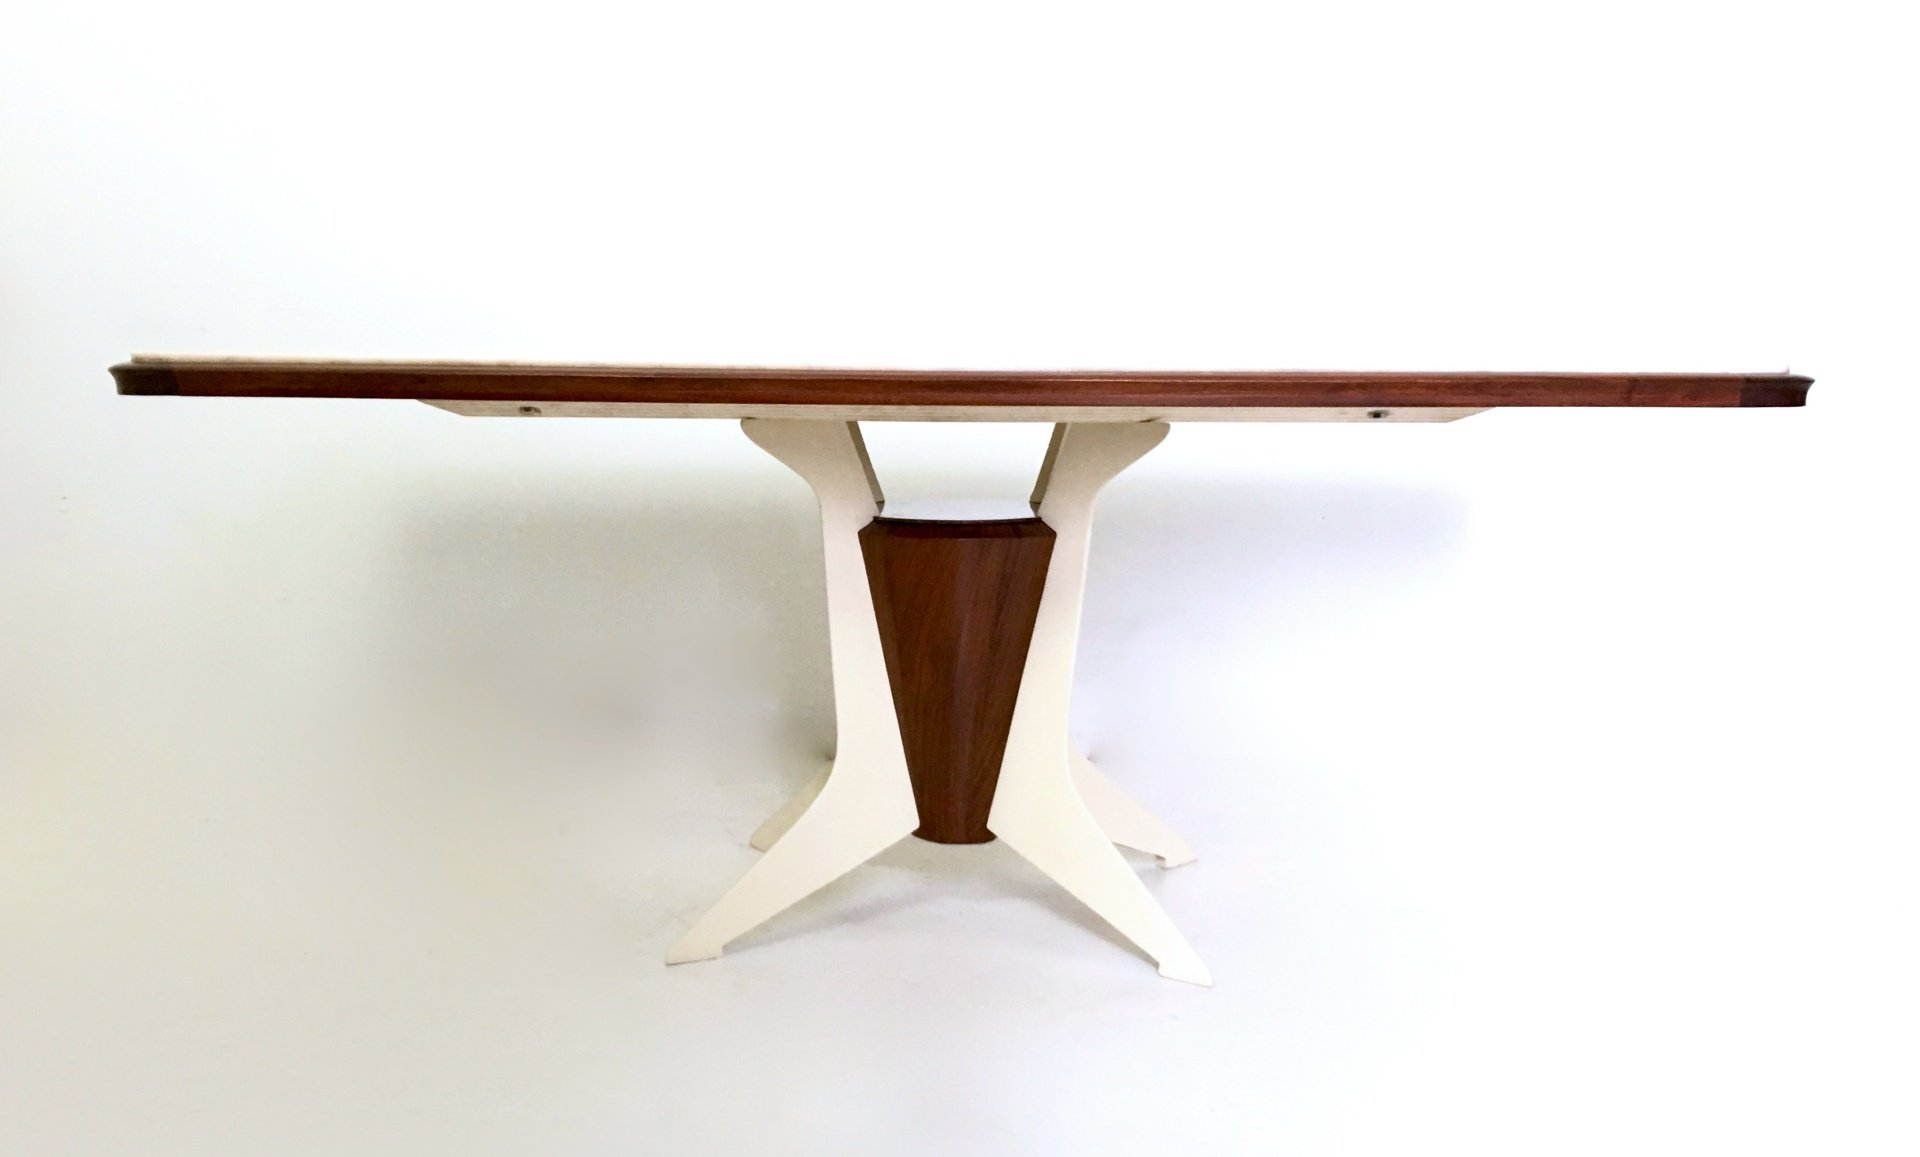 Italian Wooden Dining Table with Carrara Marble Top 1950s  : italian wooden dining table with carrara marble top 1950s 8 from www.pamono.com size 1920 x 1157 jpeg 201kB